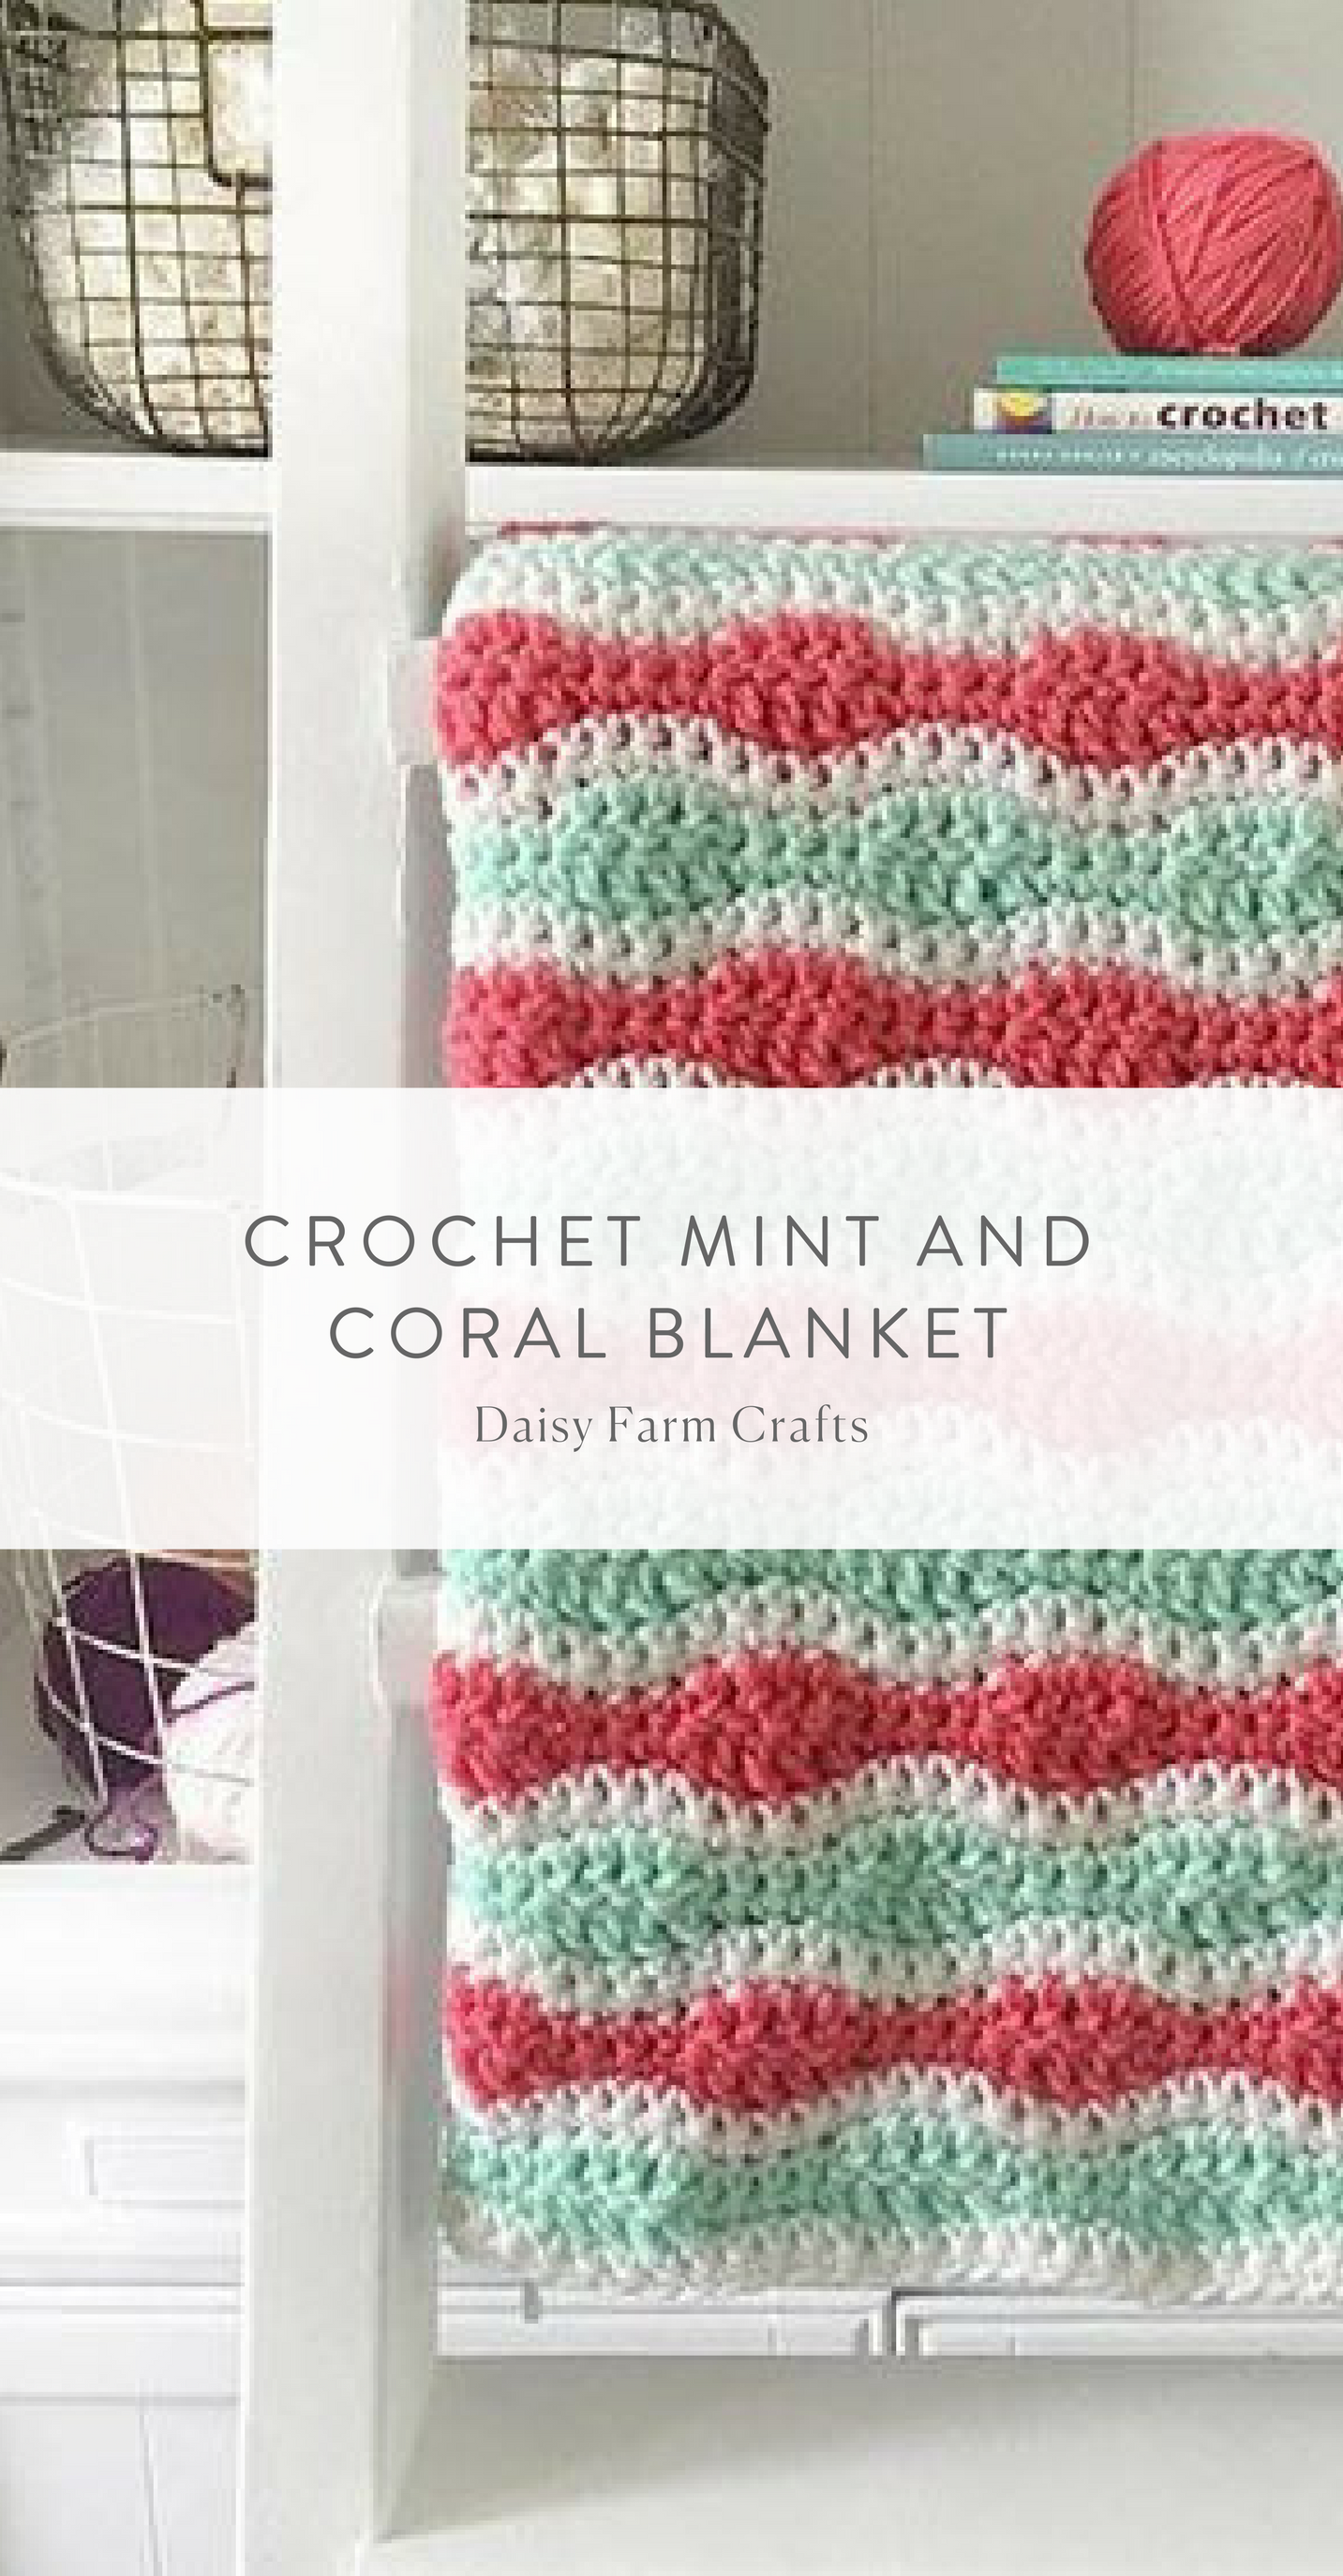 Free Pattern - Crochet Mint and Coral Blanket | Crochet | Pinterest ...